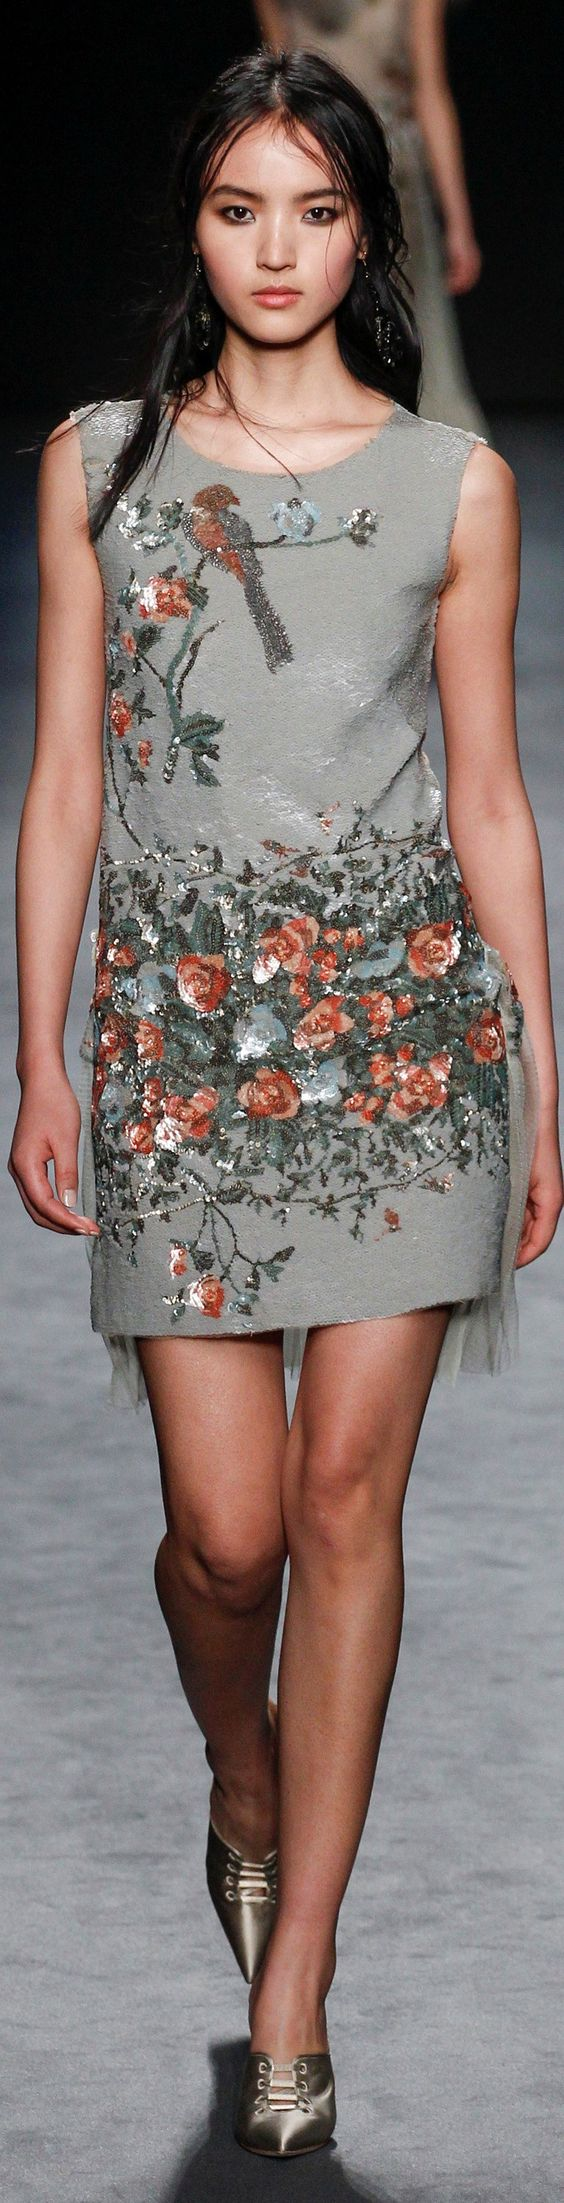 Alberta Ferretti - FALL 2016 READY-TO-WEAR